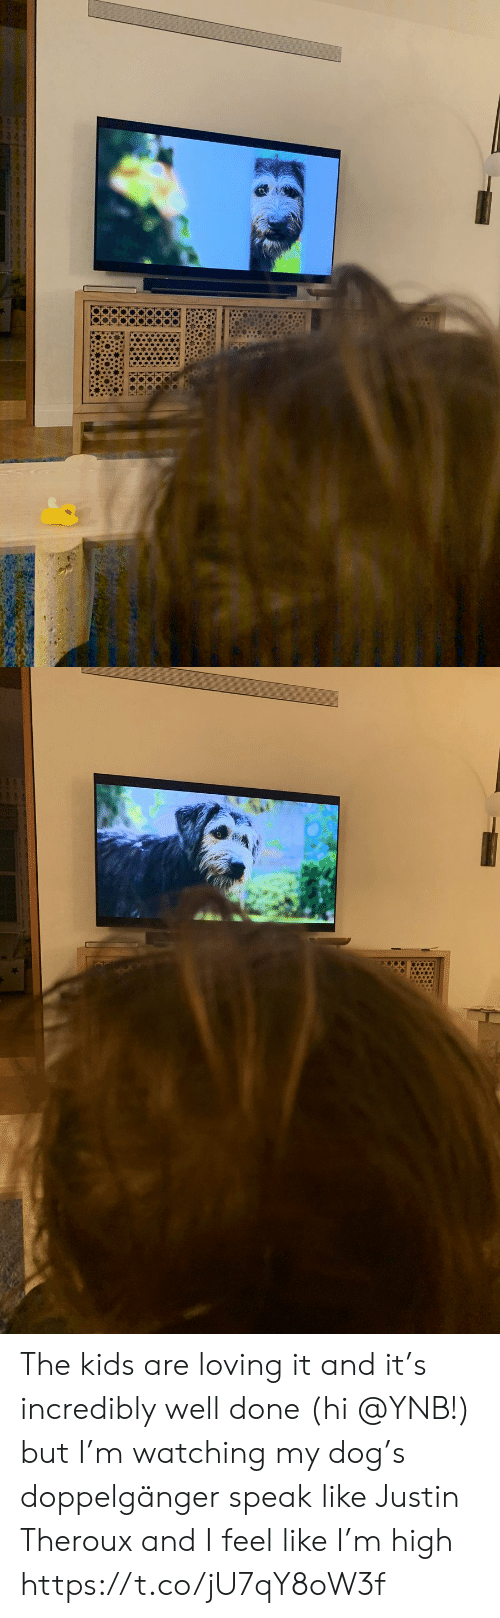 doppelganger: The kids are loving it and it's incredibly well done (hi @YNB!) but I'm watching my dog's doppelgänger speak like Justin Theroux and I feel like I'm high https://t.co/jU7qY8oW3f